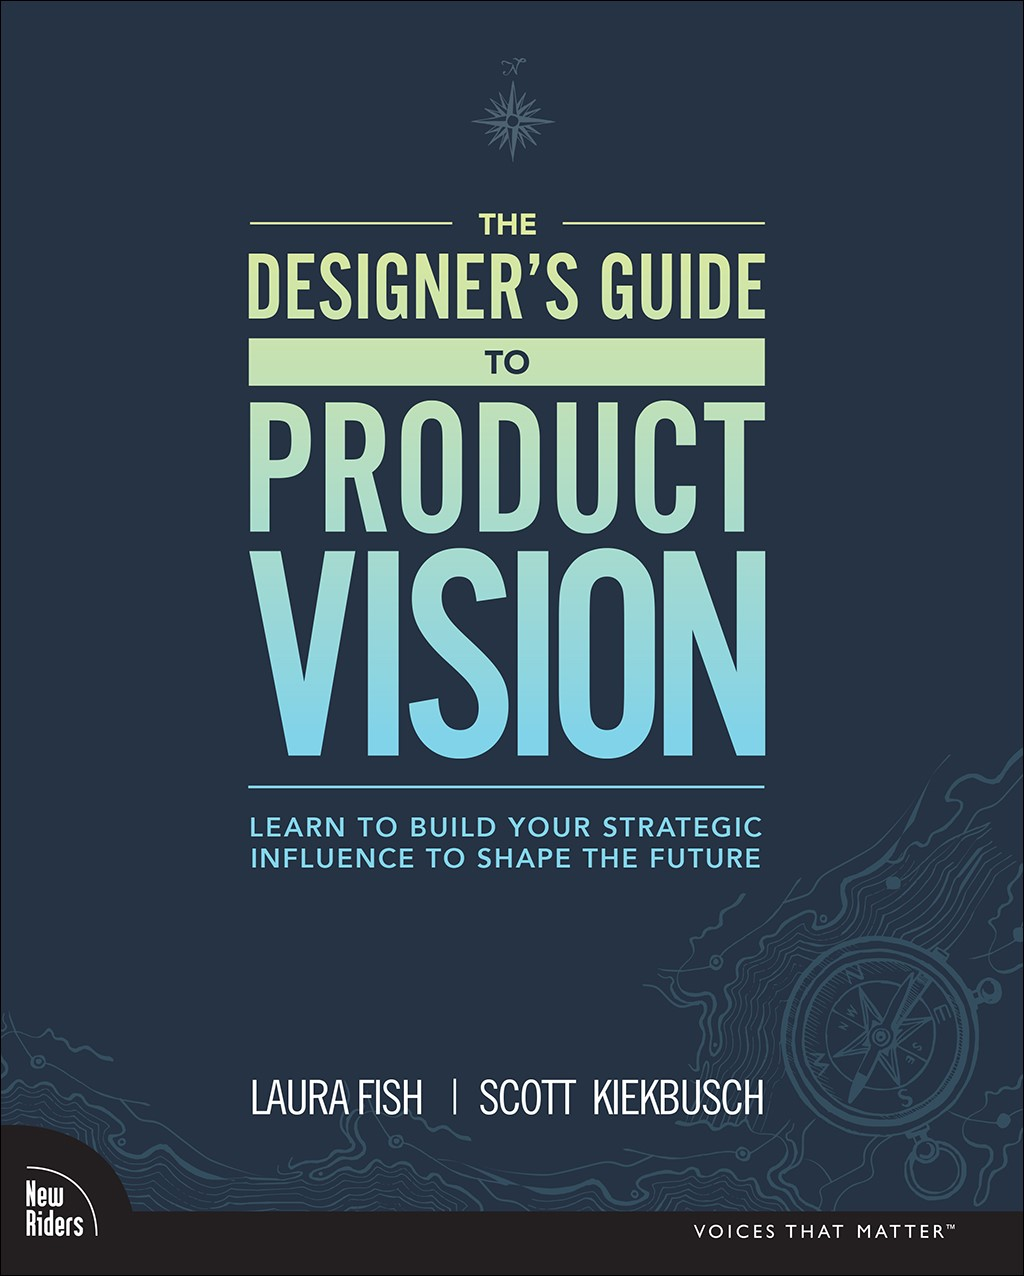 The Designer's Guide to Product Vision: Learn to build your strategic influence to shape the future